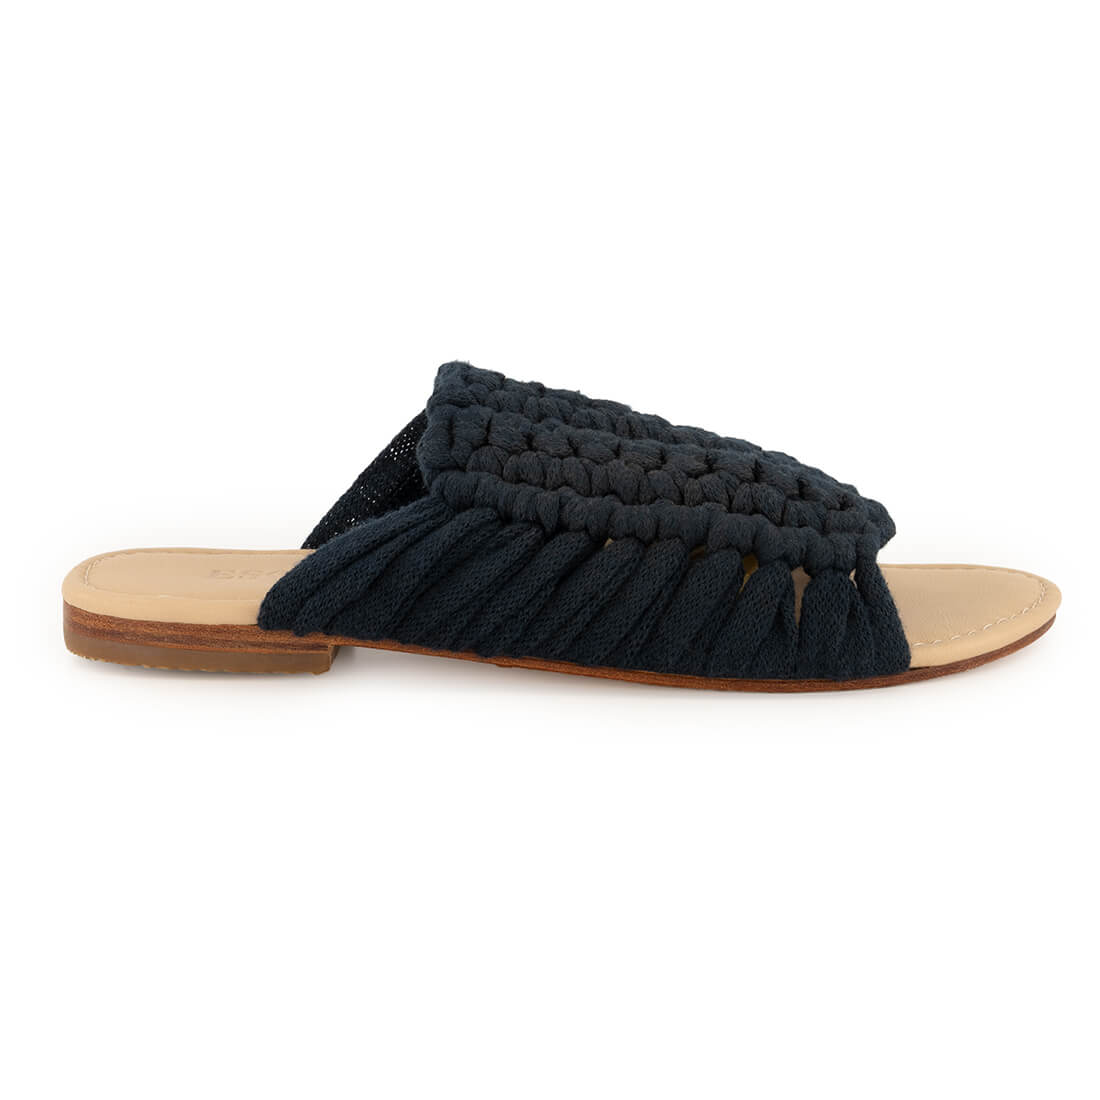 Hand-knit sandal with leather sole 1